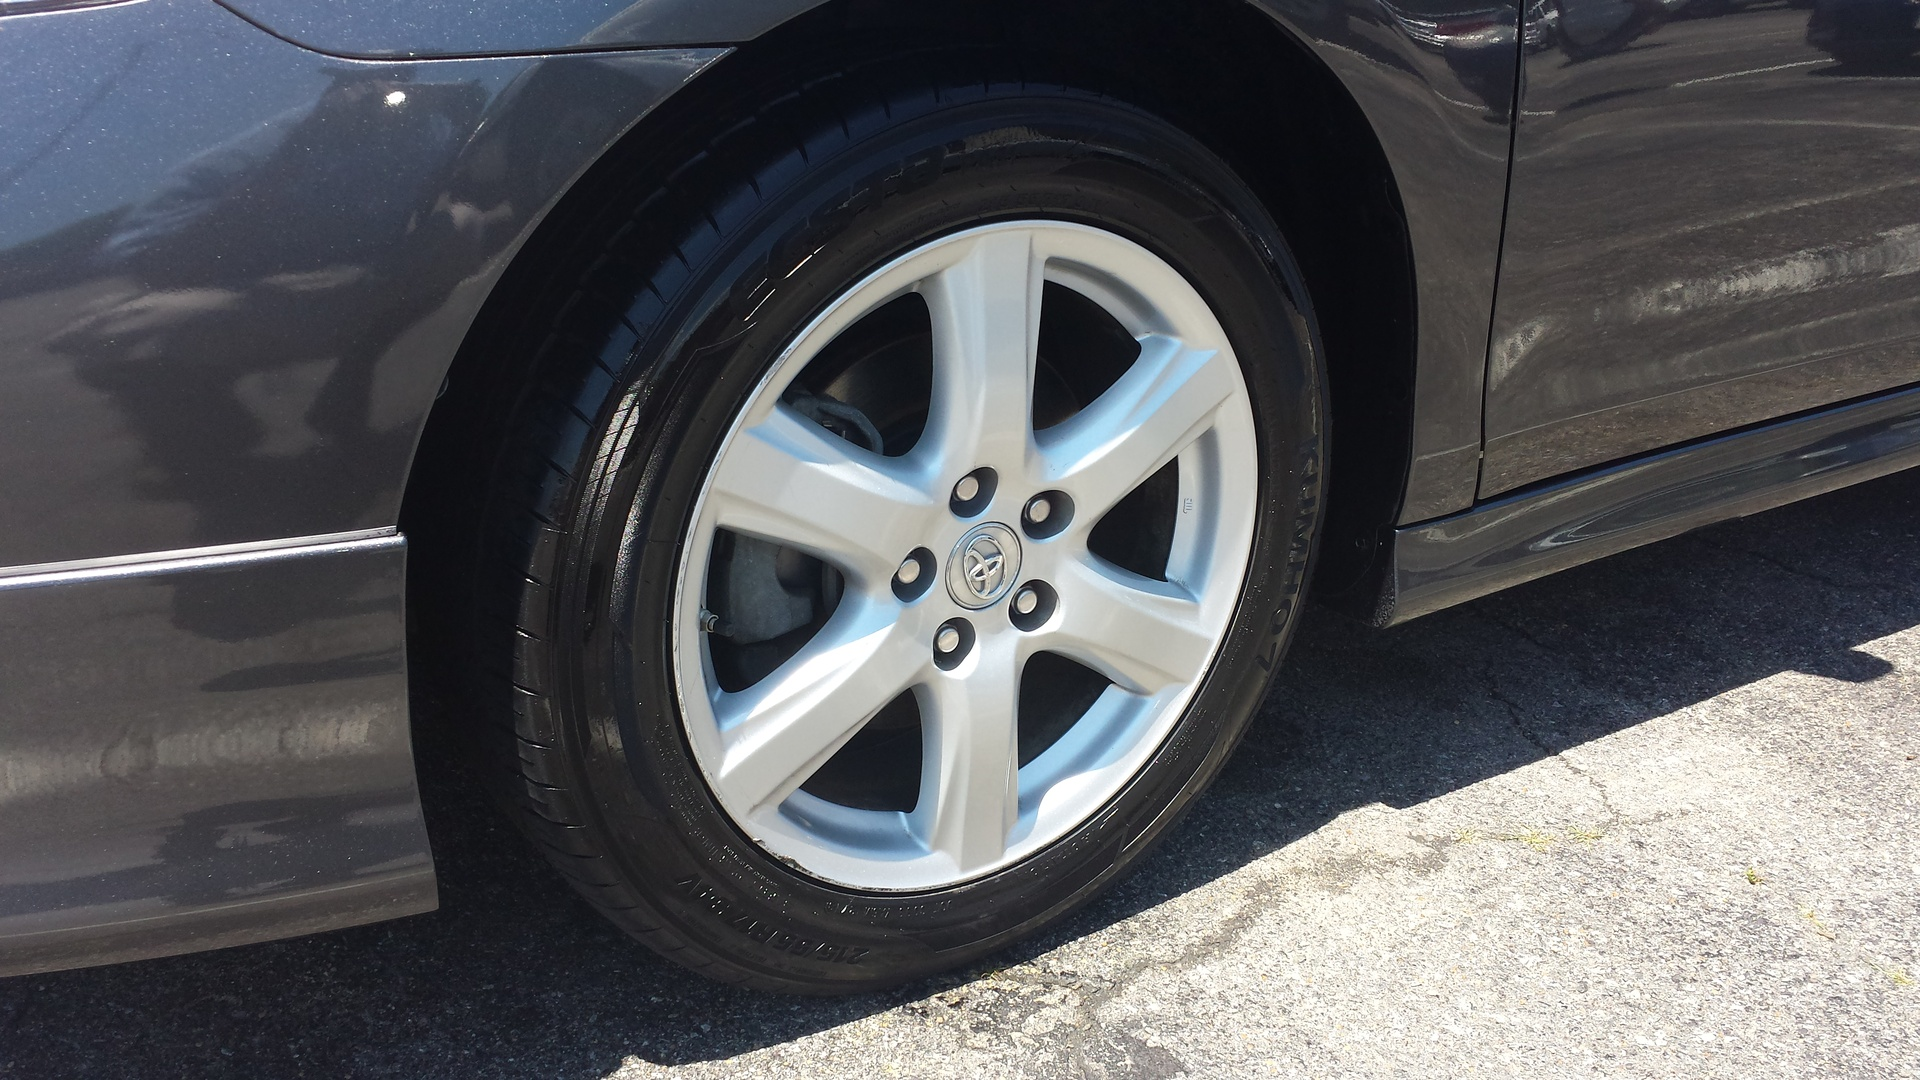 Wheel Area Cleaned